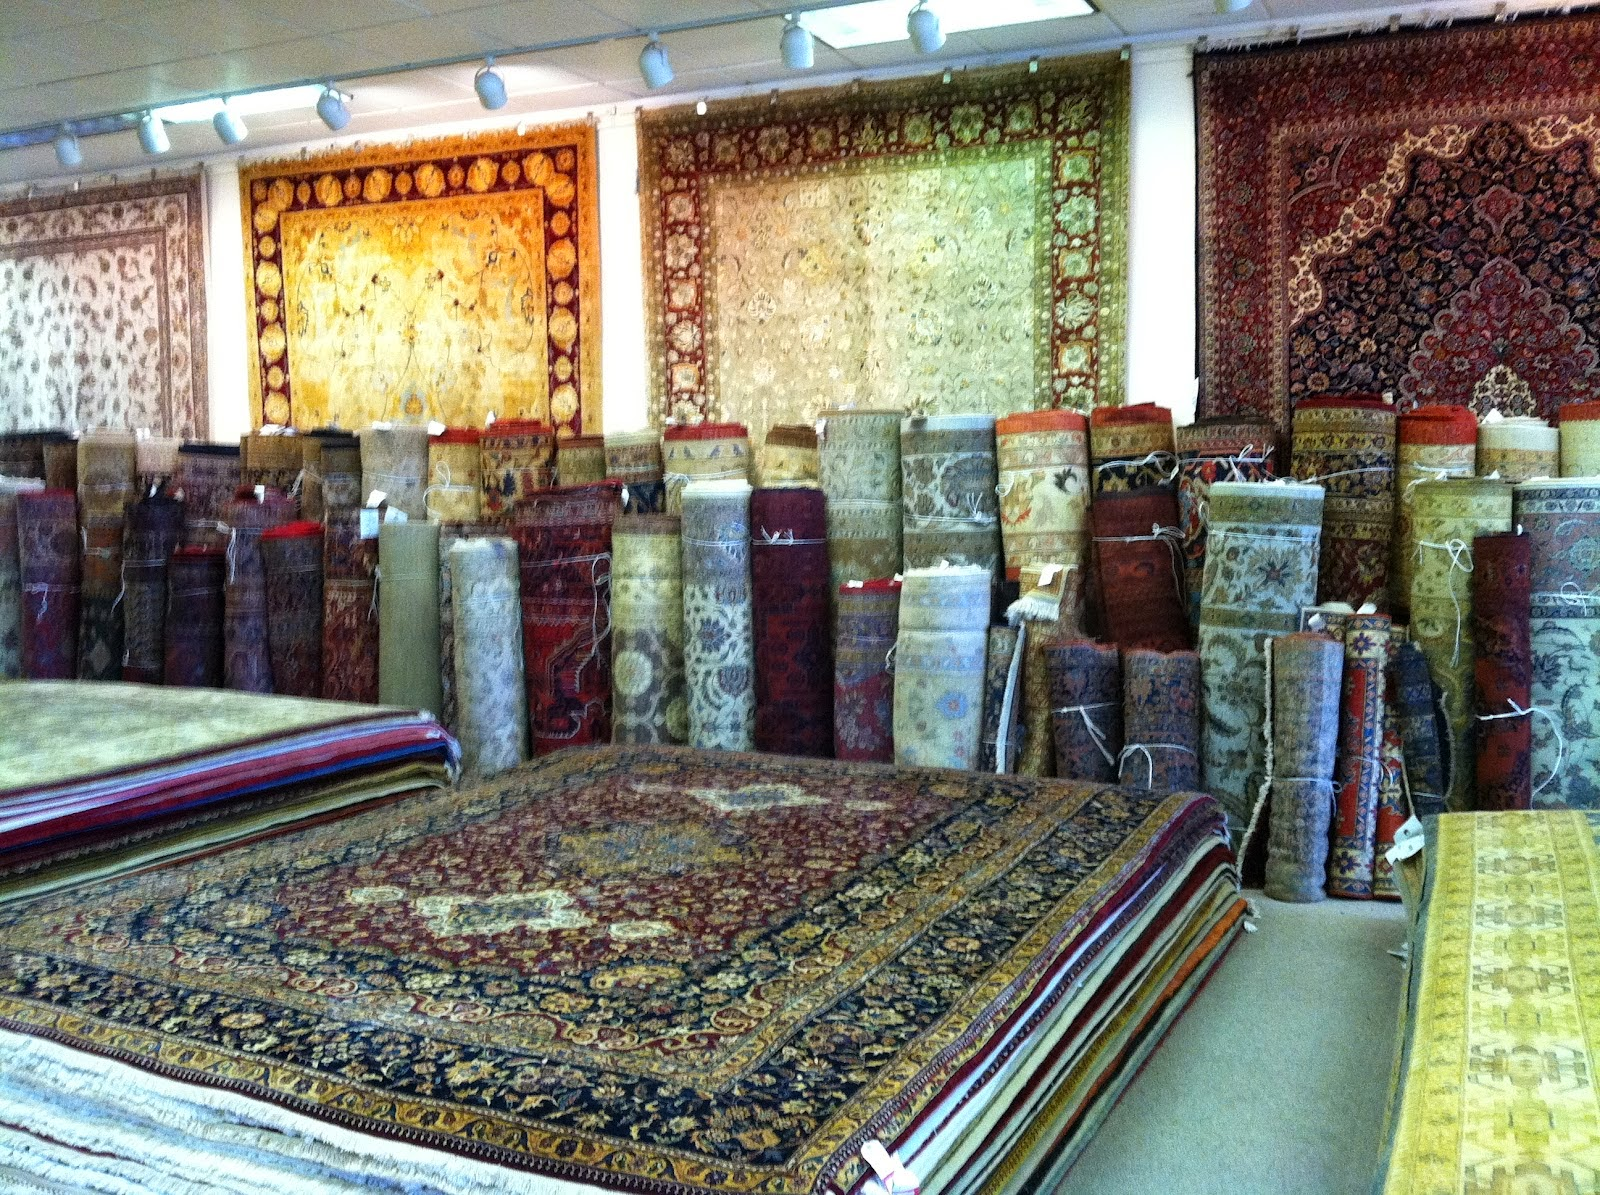 Are You Looking For The Best Place To Rugs And Carpets Home Office Use Here Is A Guide On Choosing Order Pay